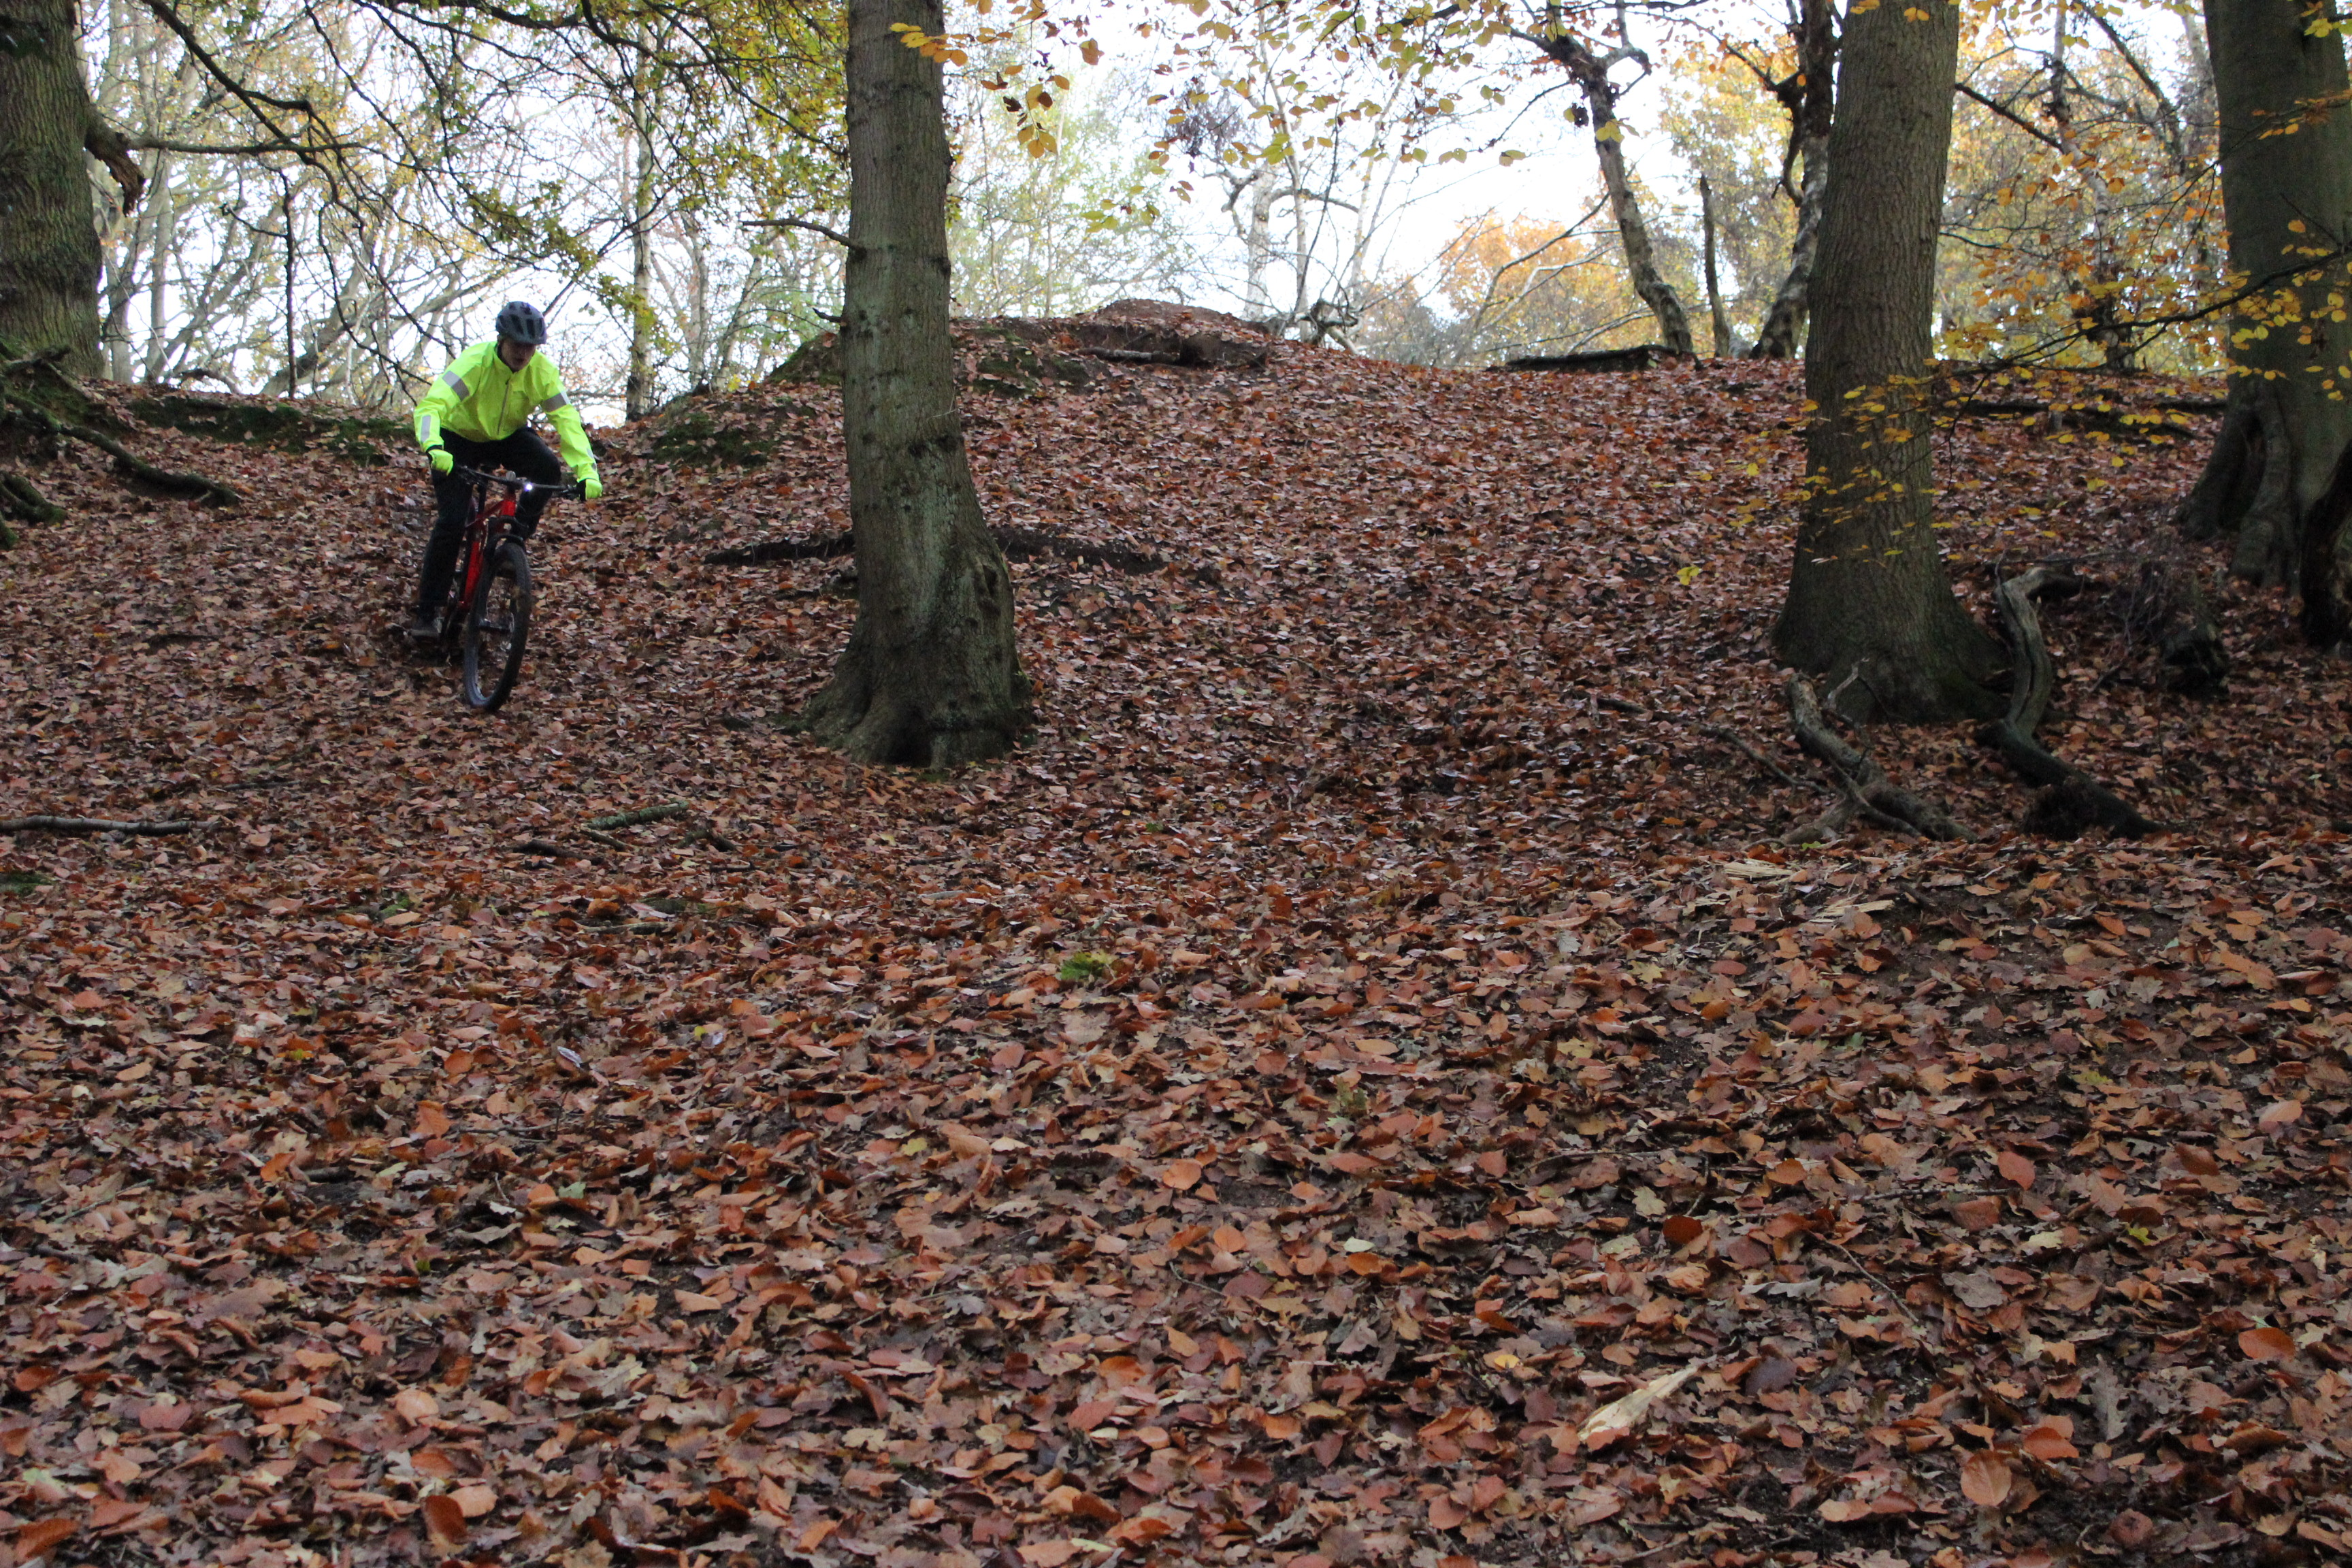 A bike rider wearing a high viz jacket riding downhill on a mountain bike in an autumnal wood